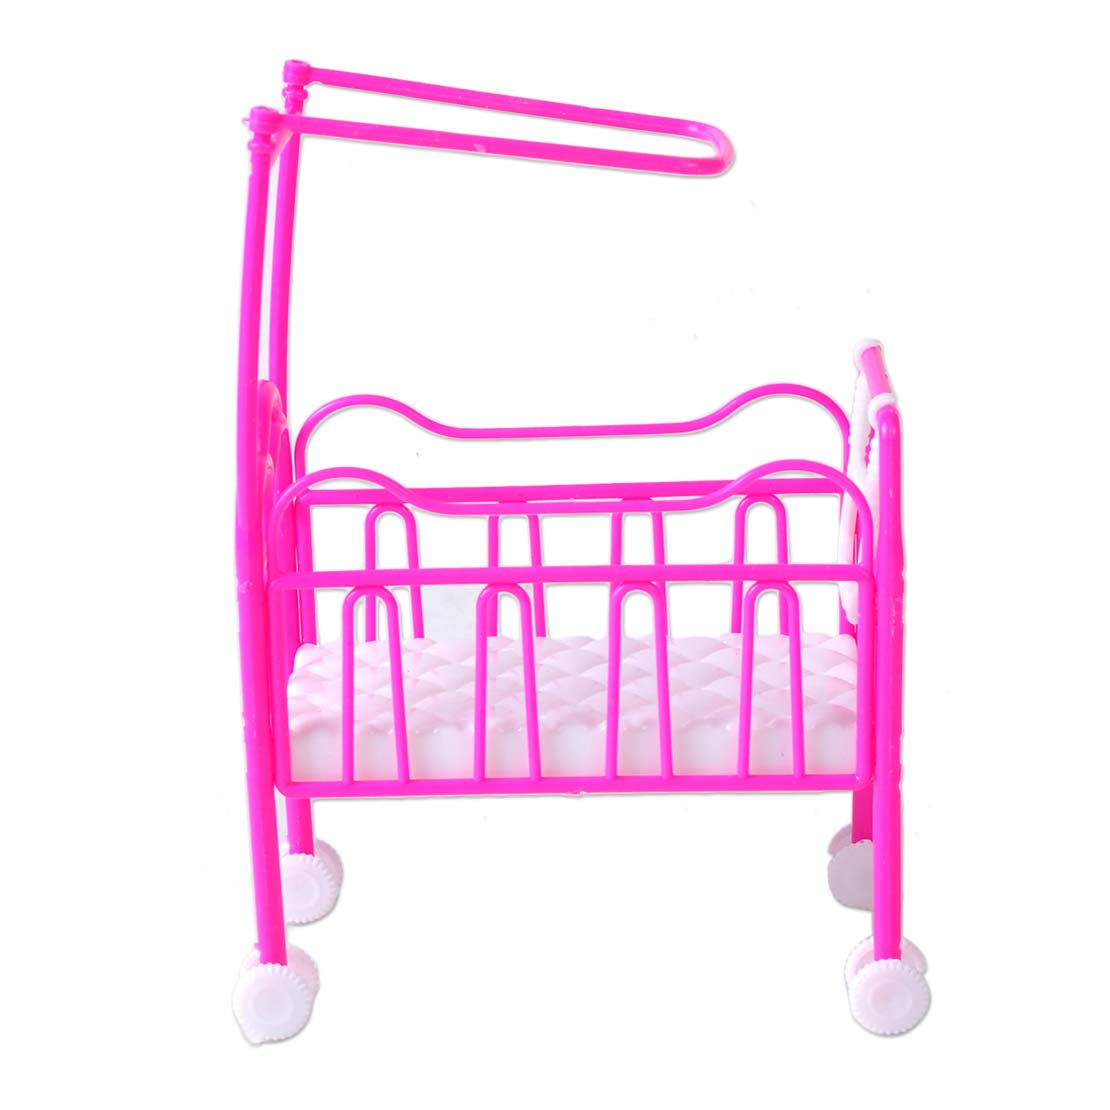 Plastic infant baby cradle bed dollhouse bedroom furniture for barbie doll toy ebay Plastic bedroom furniture